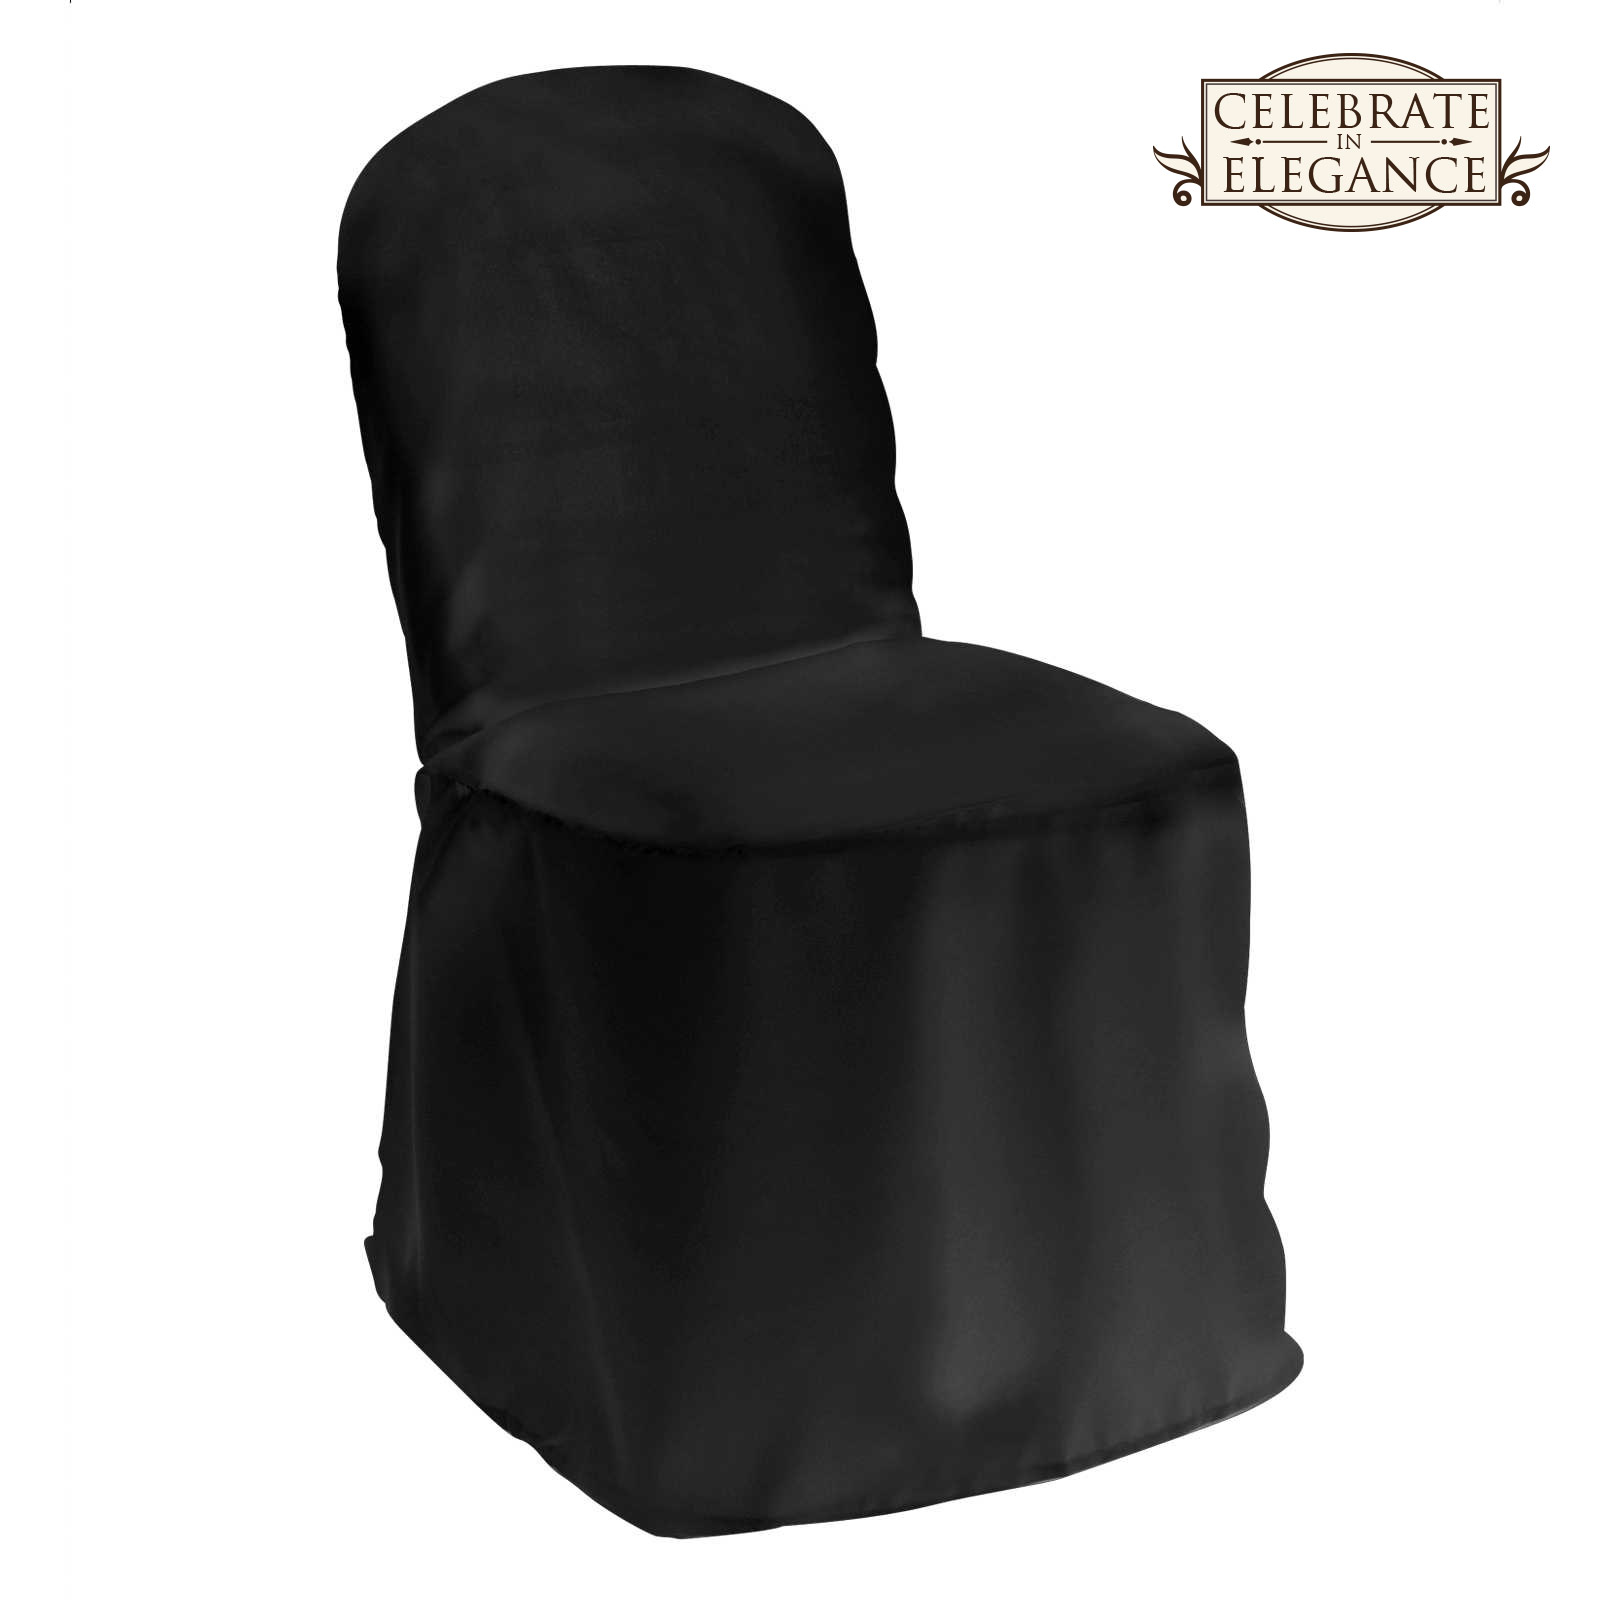 used banquet chair covers wholesale lafuma anti gravity 10 polyester wedding party décor ebay